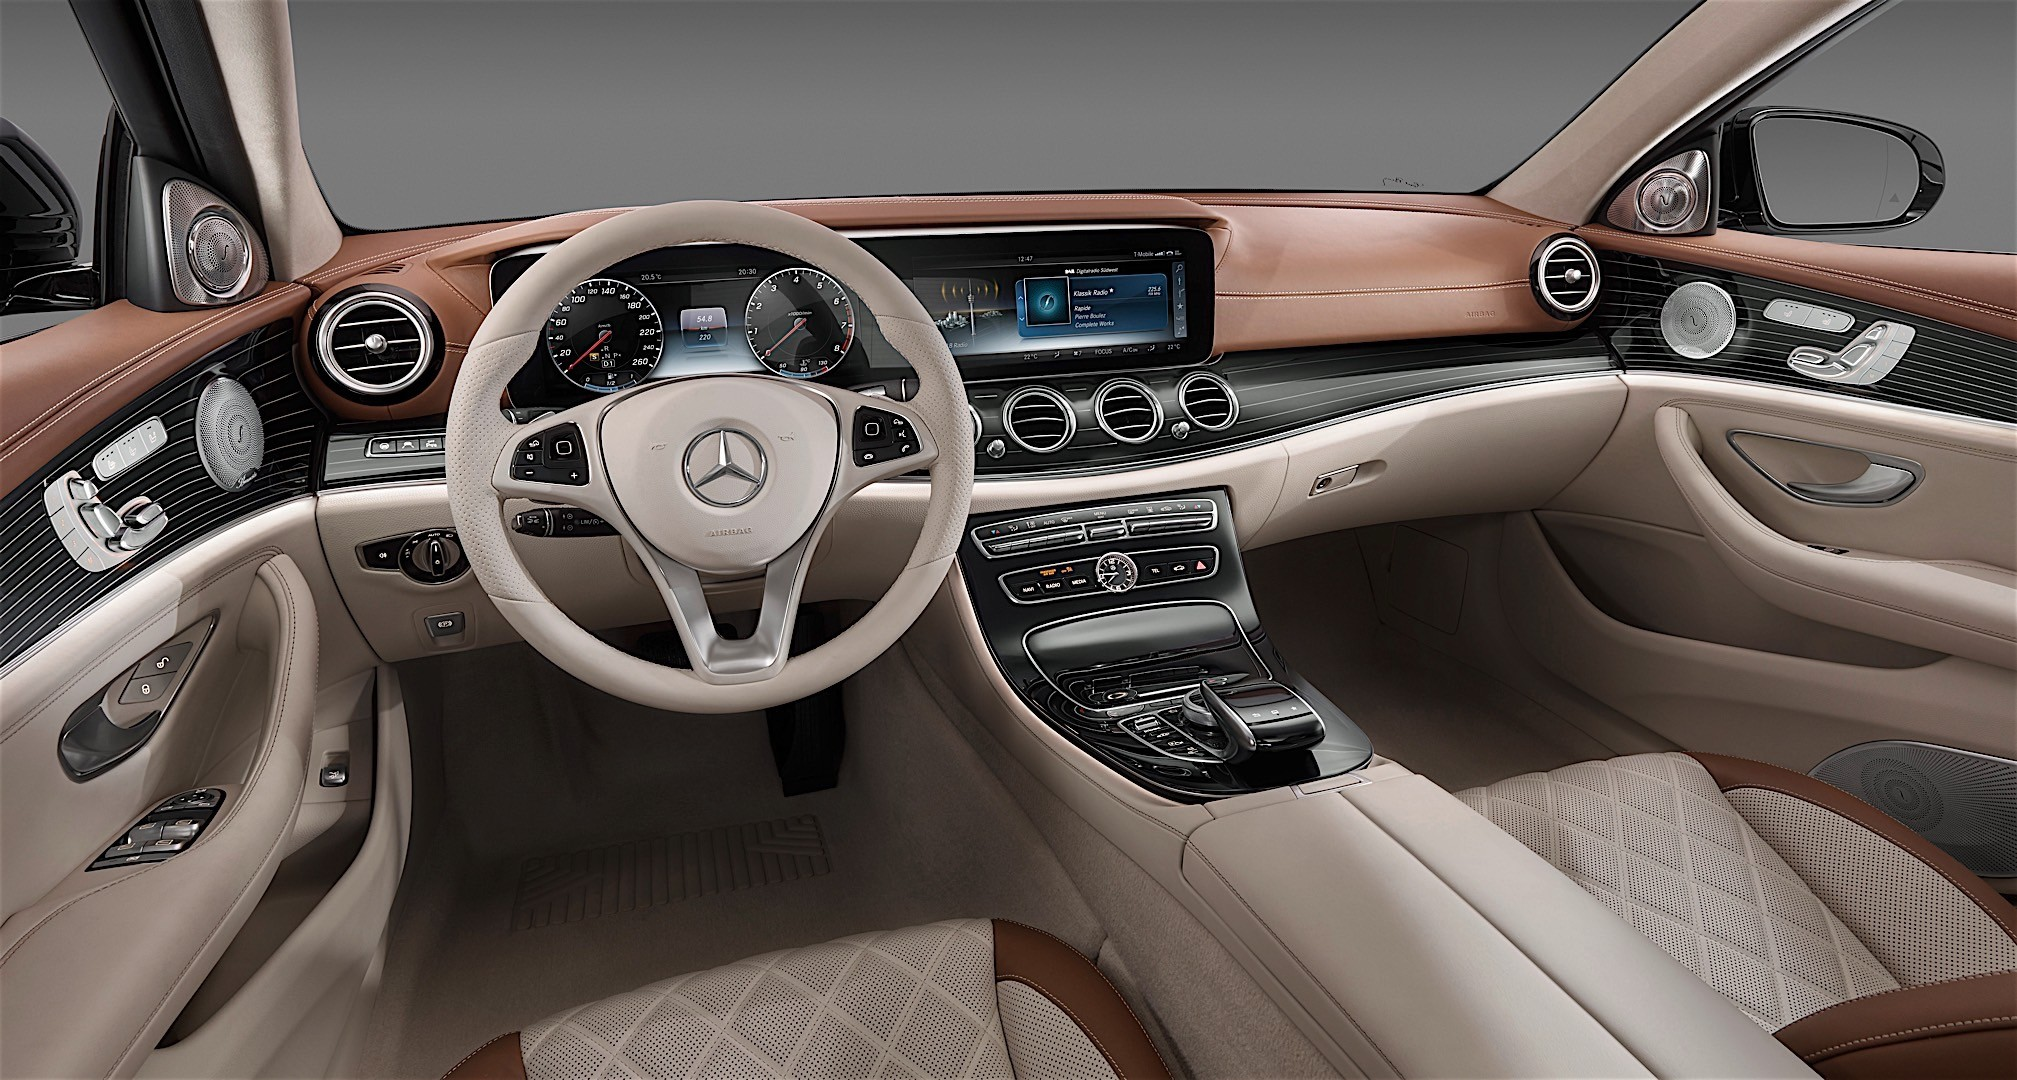 2017 Mercedes Benz E Class Interior Officially Unveiled Will Rival The S Class Photo Gallery 102722 on e350 convertible